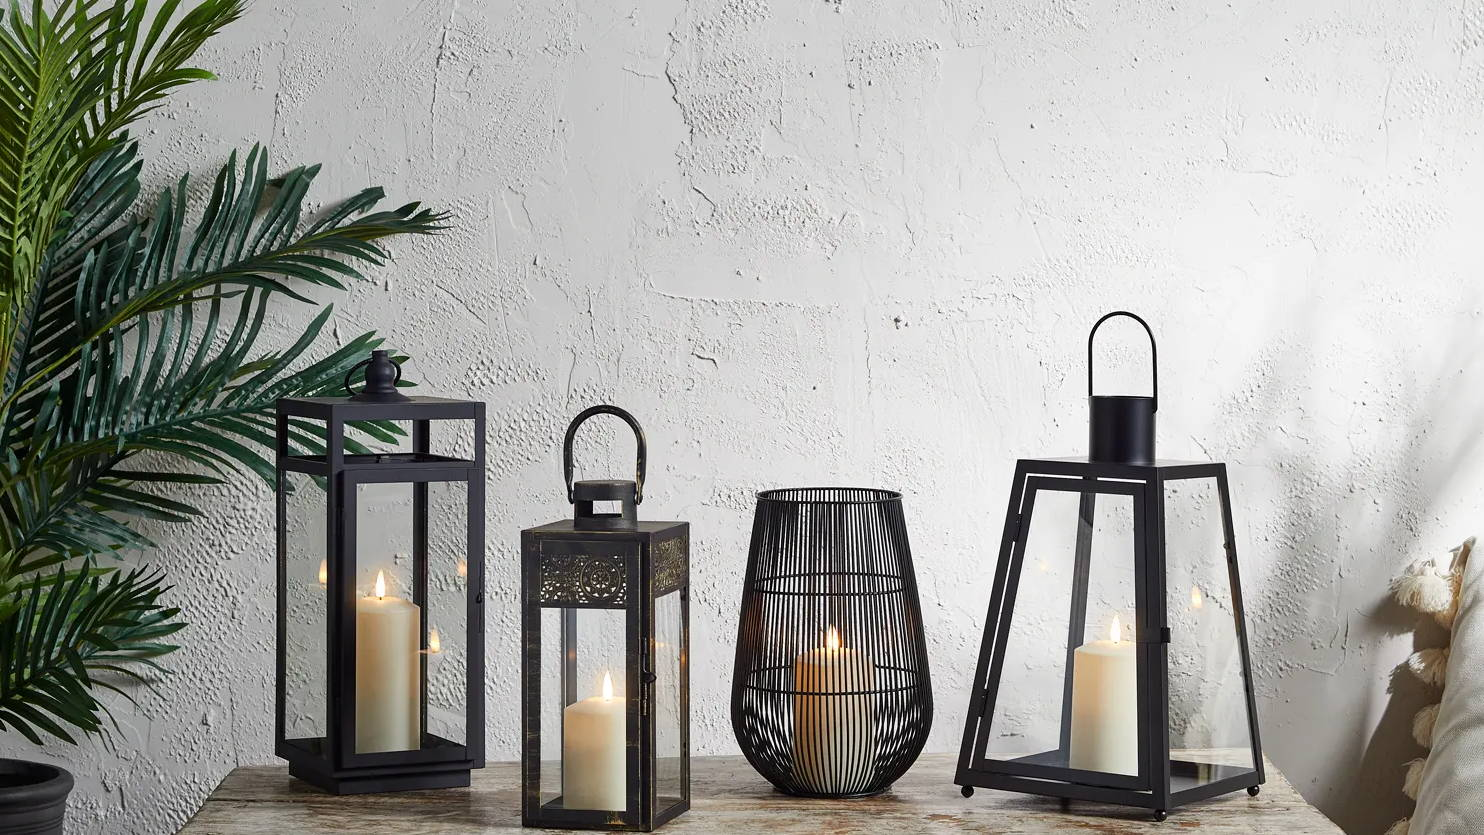 Assortment of black metal lanterns with TruGlow candles sat on table